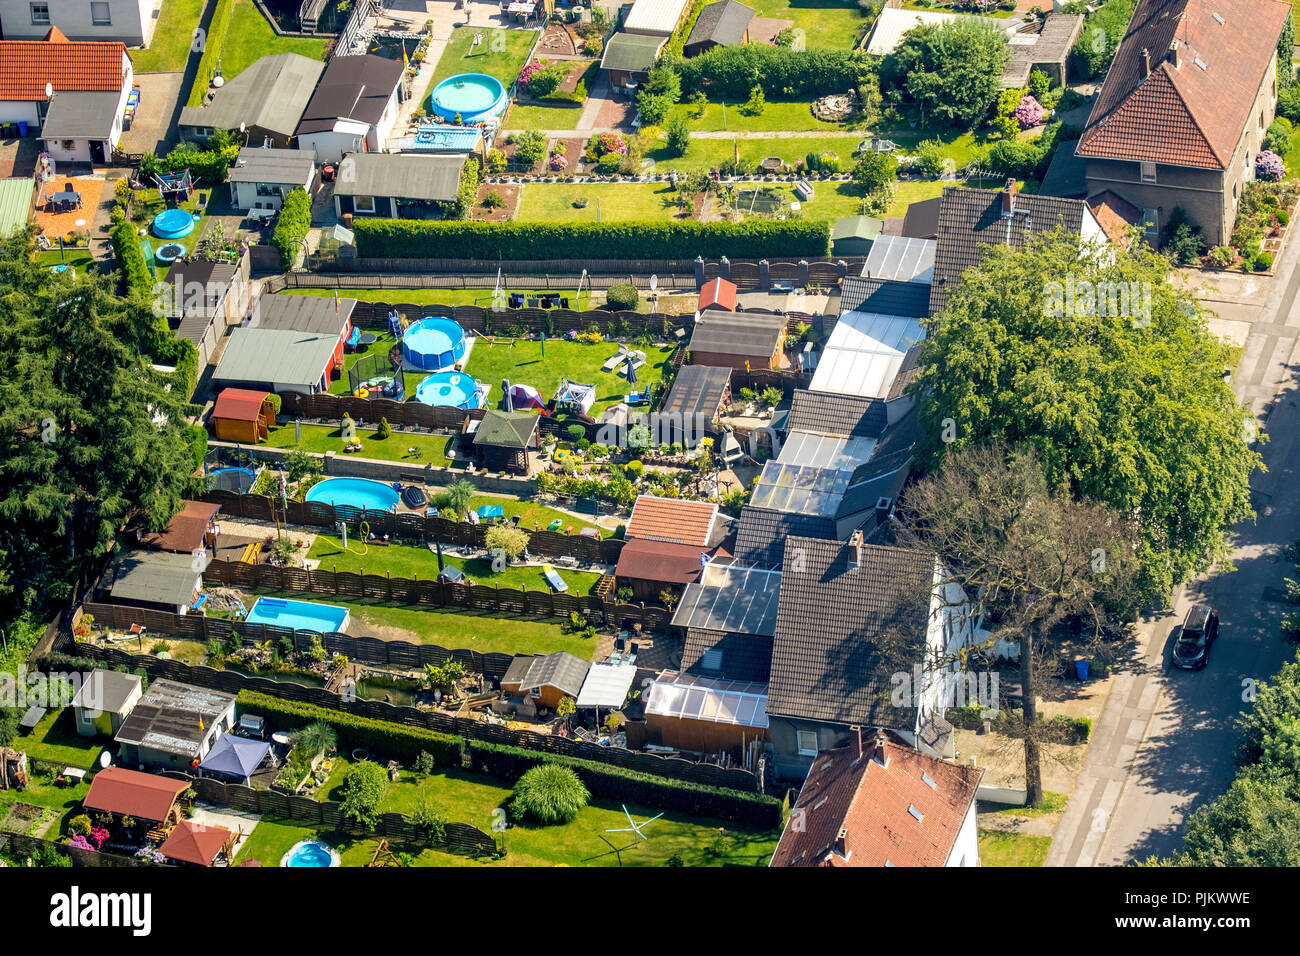 Neighboring gardens with hedges and fences, rubber pools, neighborhood, Gladbeck, Ruhr area, North Rhine-Westphalia, Germany - Stock Image